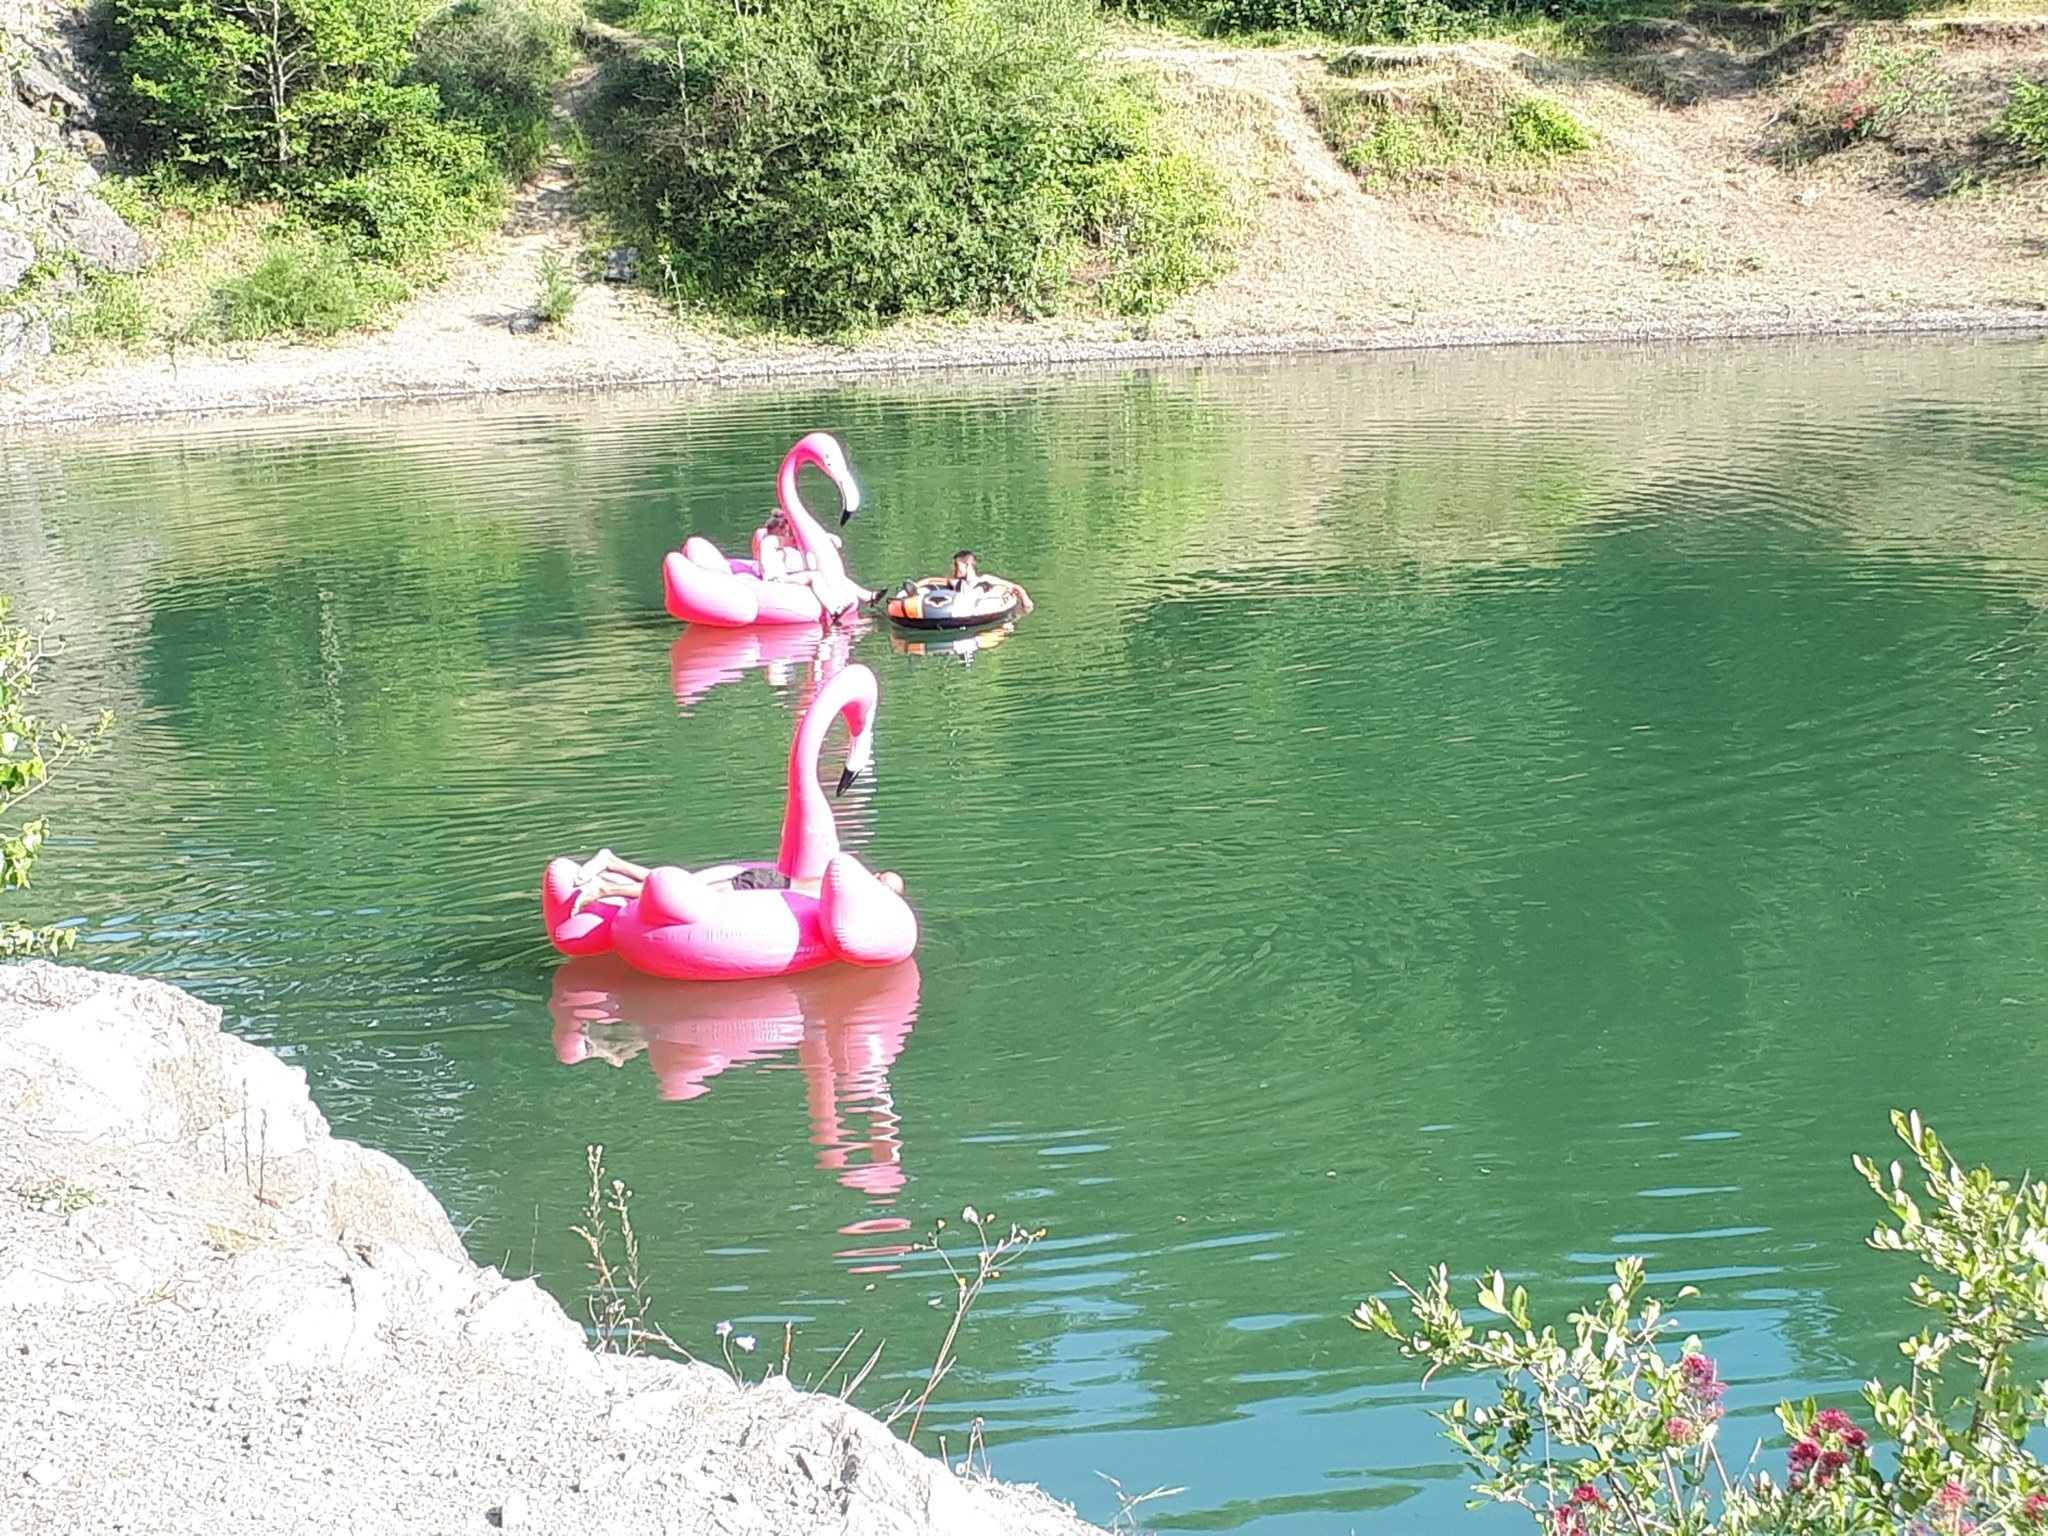 People and inflatables in the Gullet Quarry